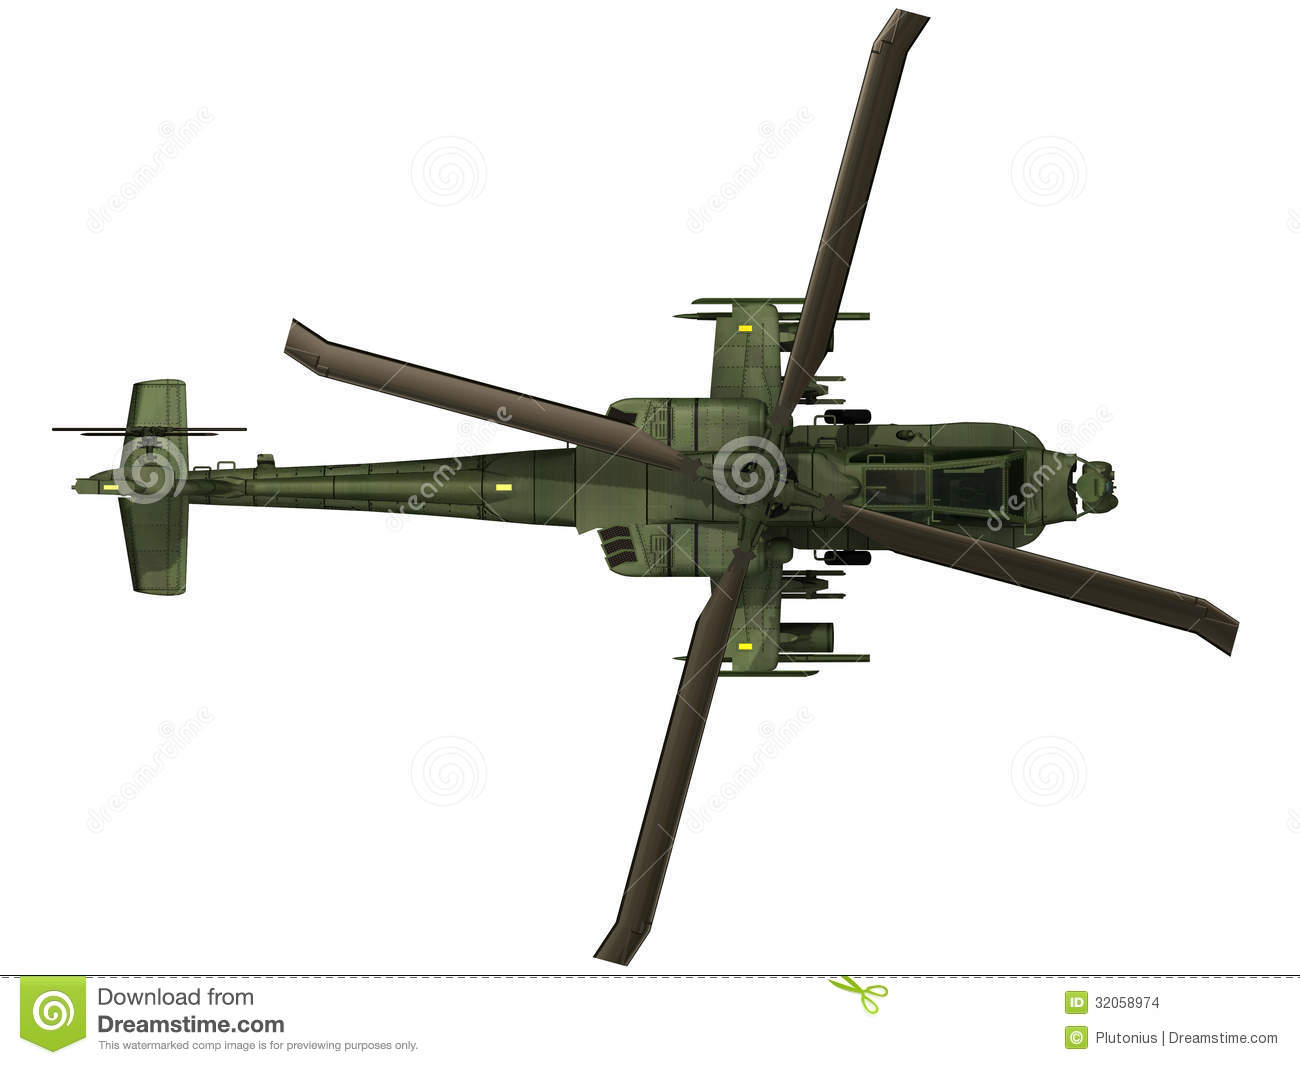 apache helicopter video with Stock Images D Rendering Ah Apache Top View Image32058974 on Airbus A319 further Watch further Stock Images D Rendering Ah Apache Top View Image32058974 together with Amazing Female Body Painting Pictures as well Watch.